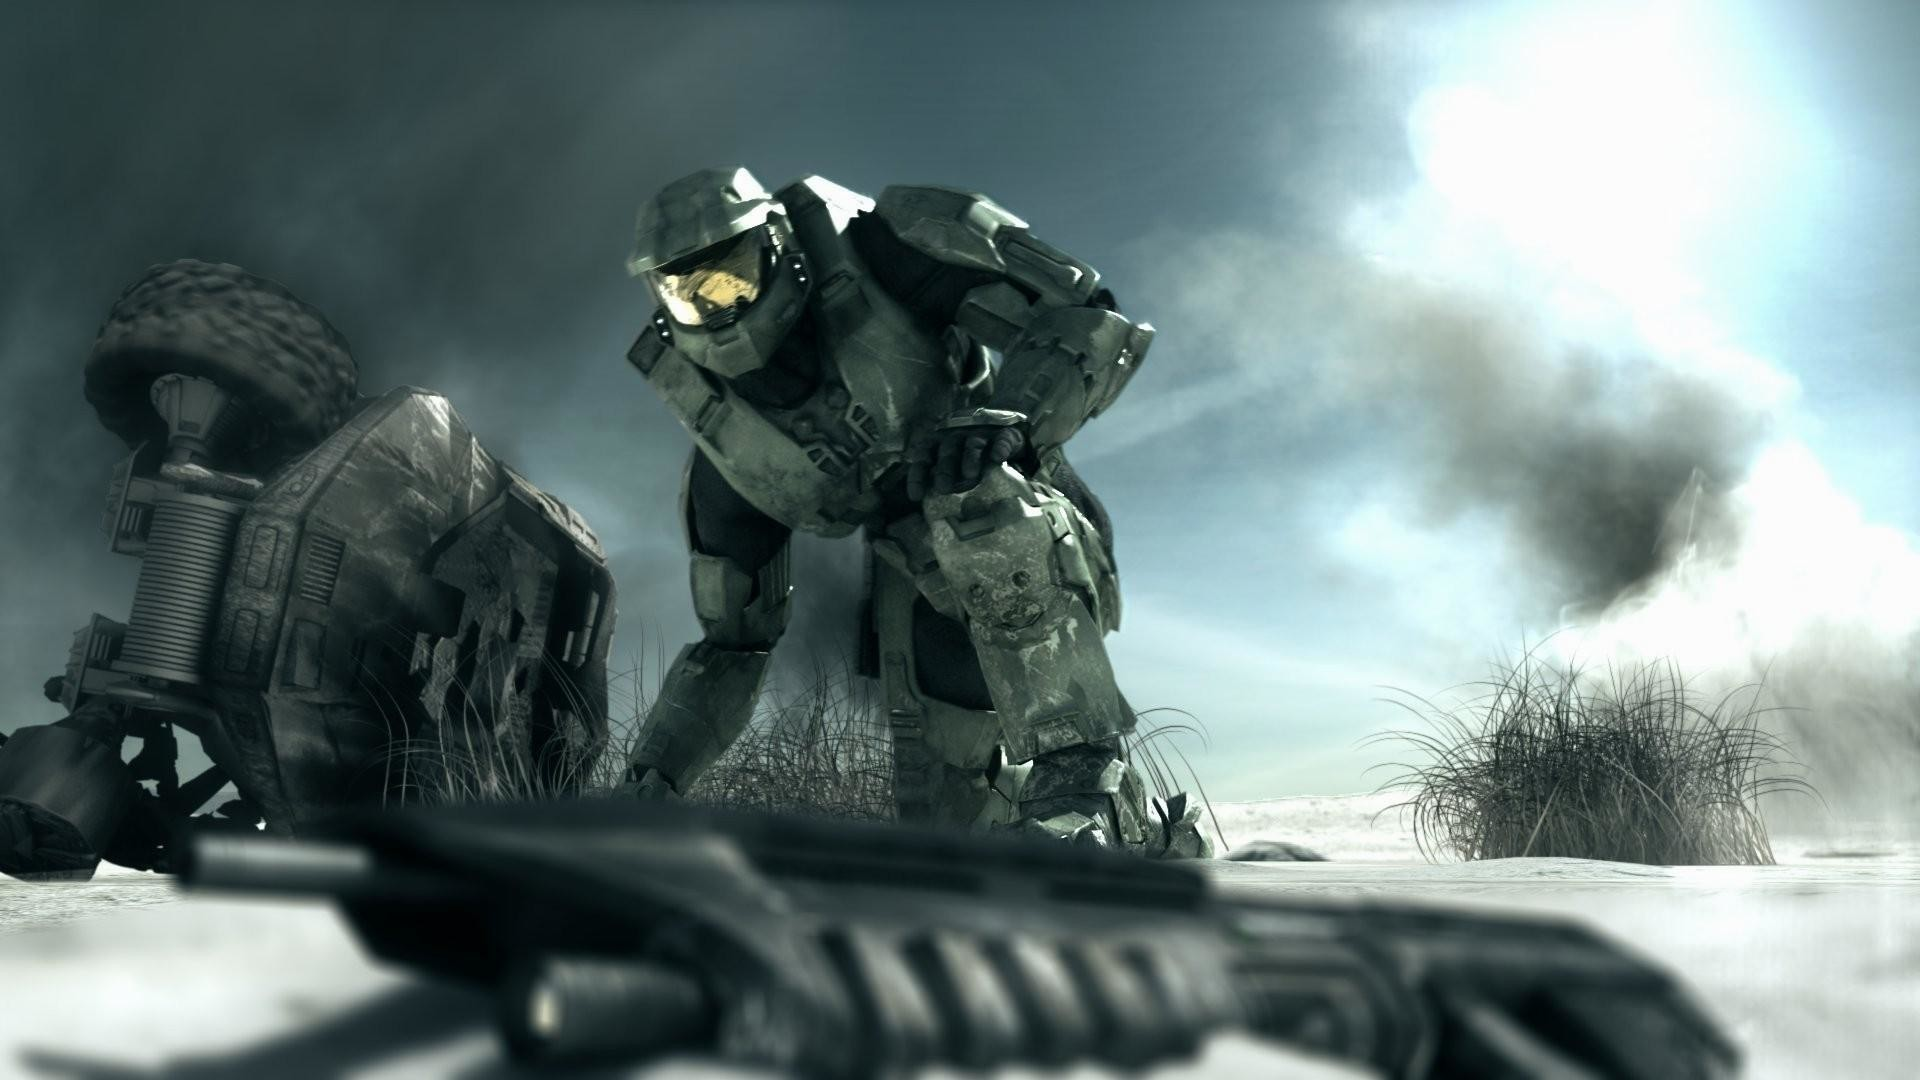 1920x1080 x-Master-chief-HD-Desktop-Backgrounds-wallpaper-wp20010644